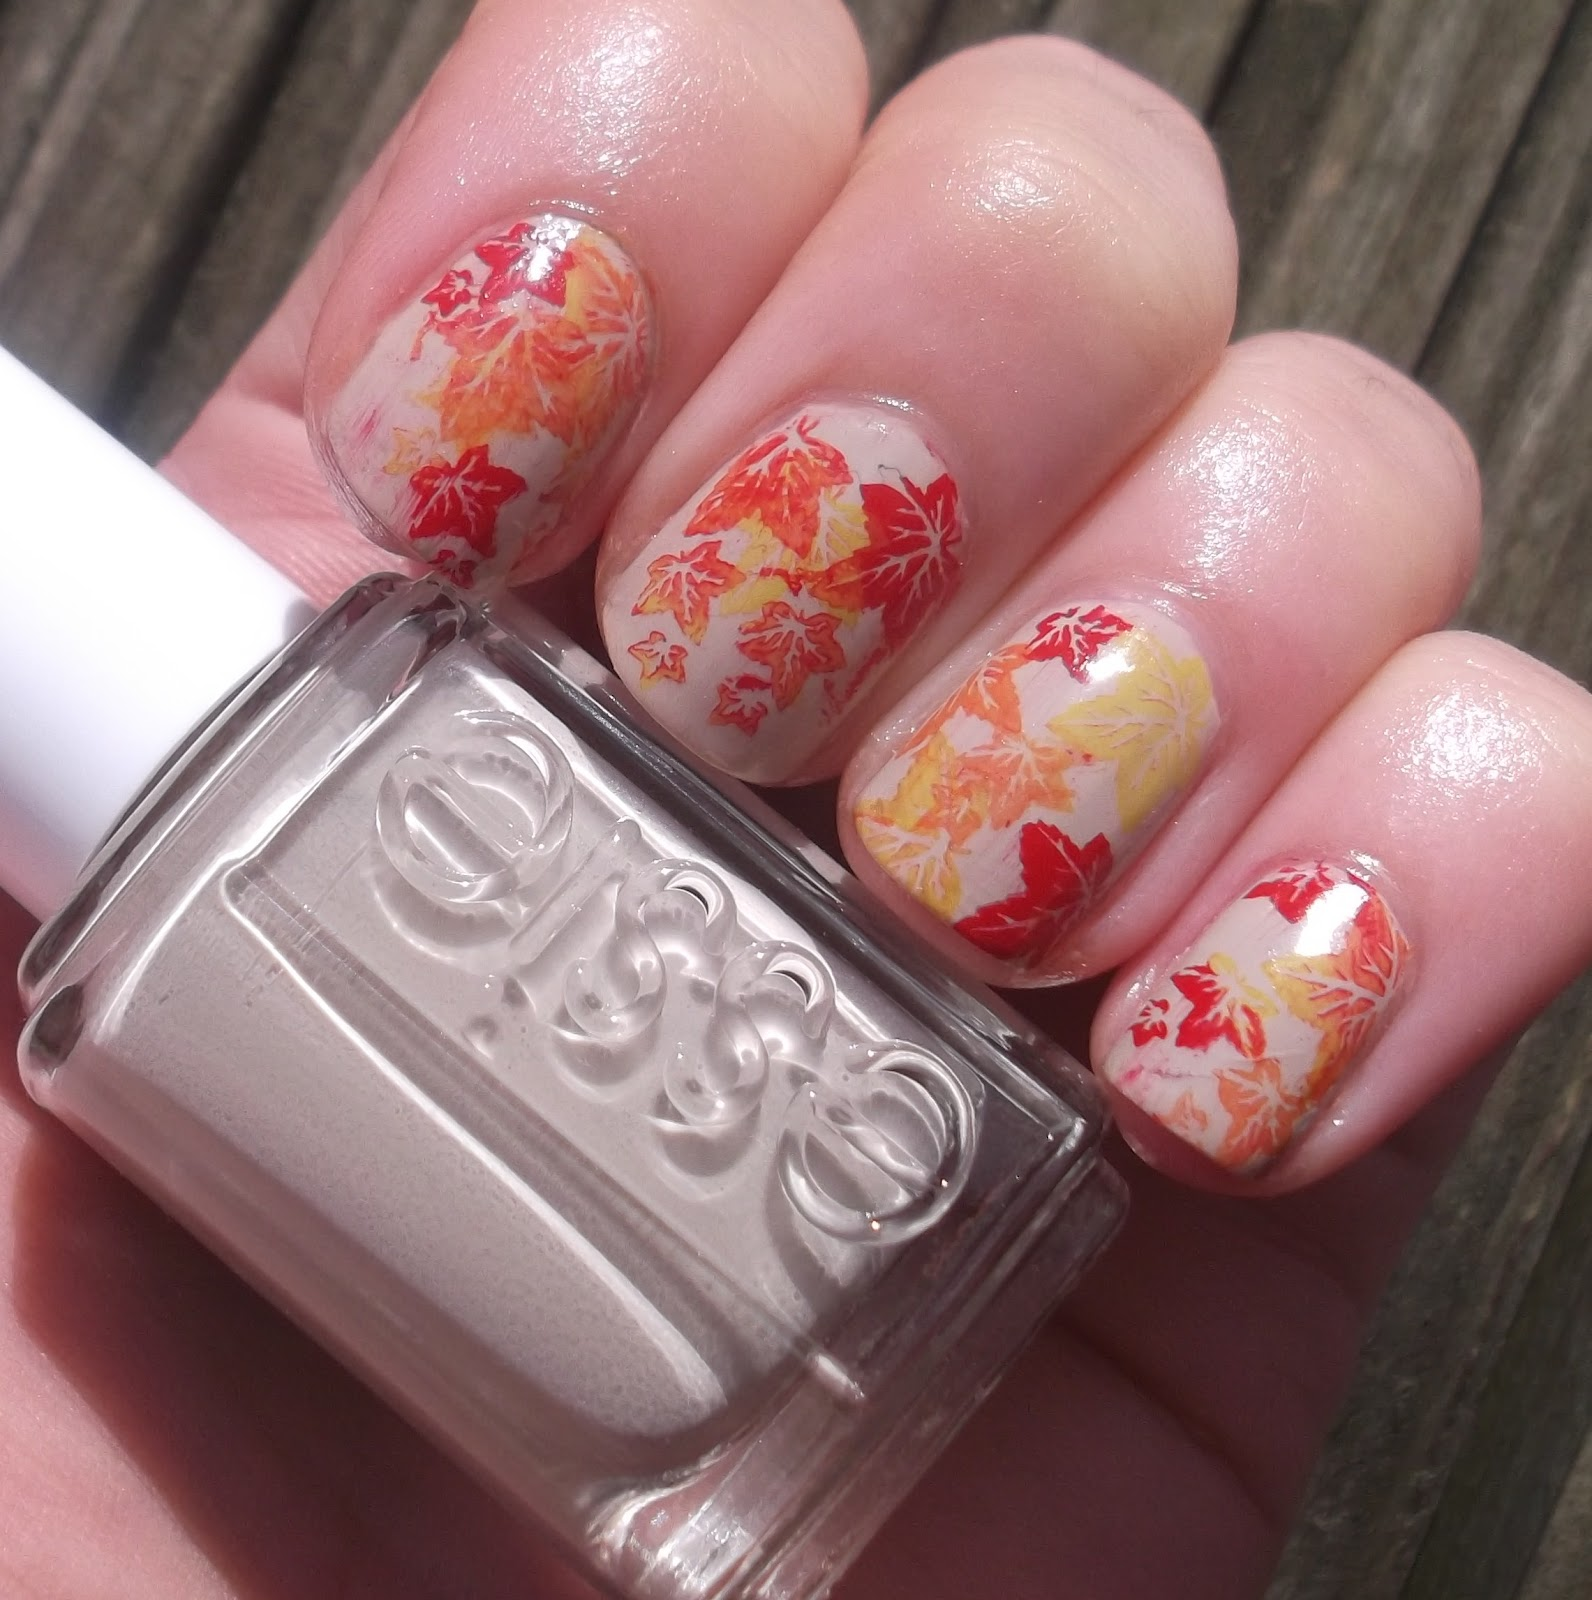 Lou is Perfectly Polished: Autumn Leaf nails